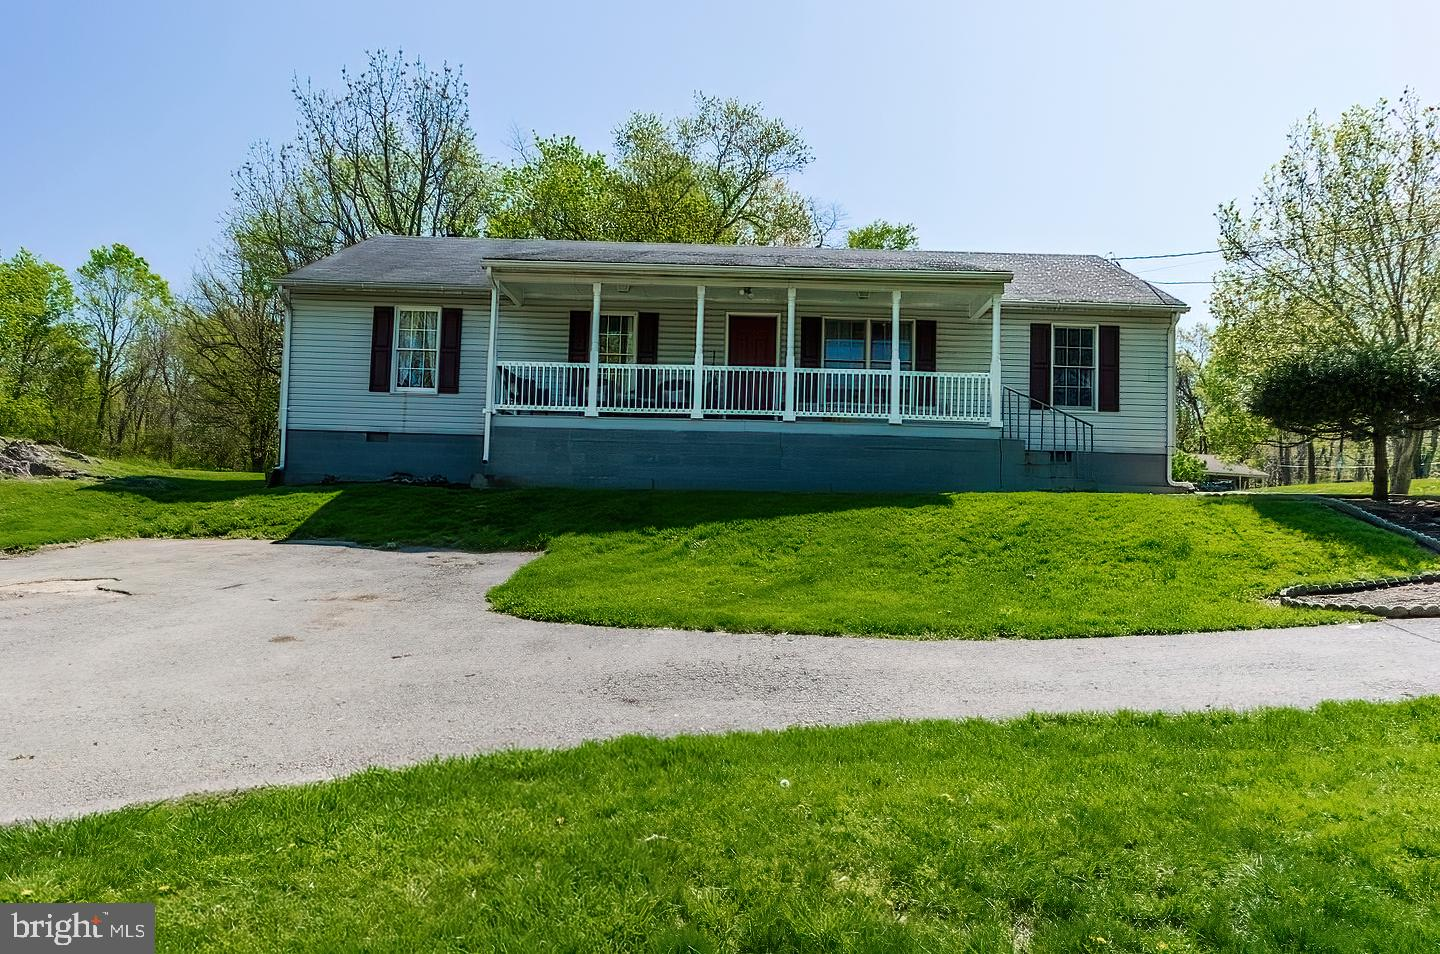 Great Ranch home - Large Living Room, Kitchen/Dining, Large Family Room, 3 Bedrooms and 2 Full Baths